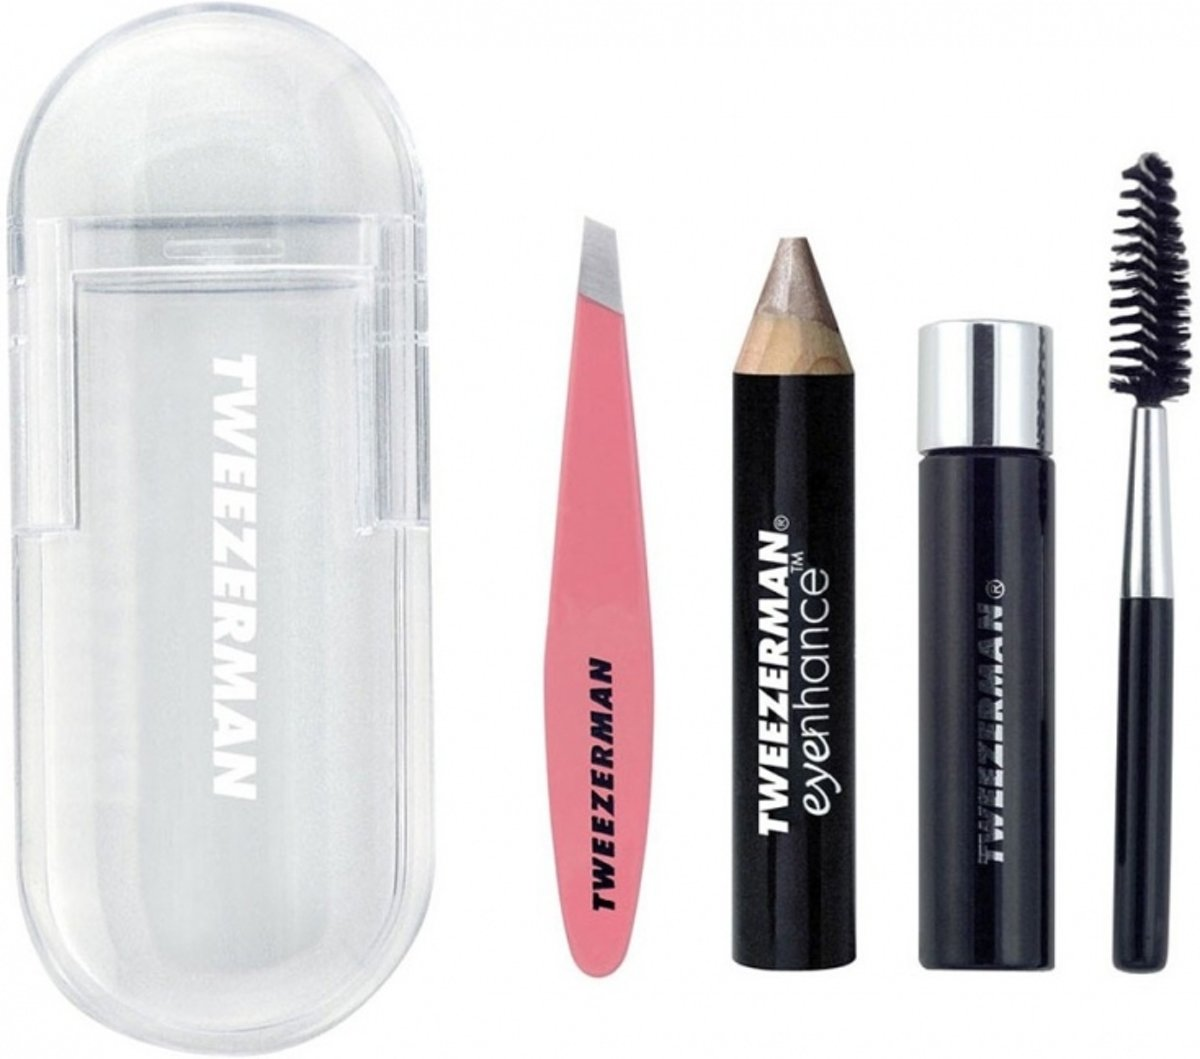 Tweezerman Mini Brow Rescue Kit Verzorgingsset 1 set